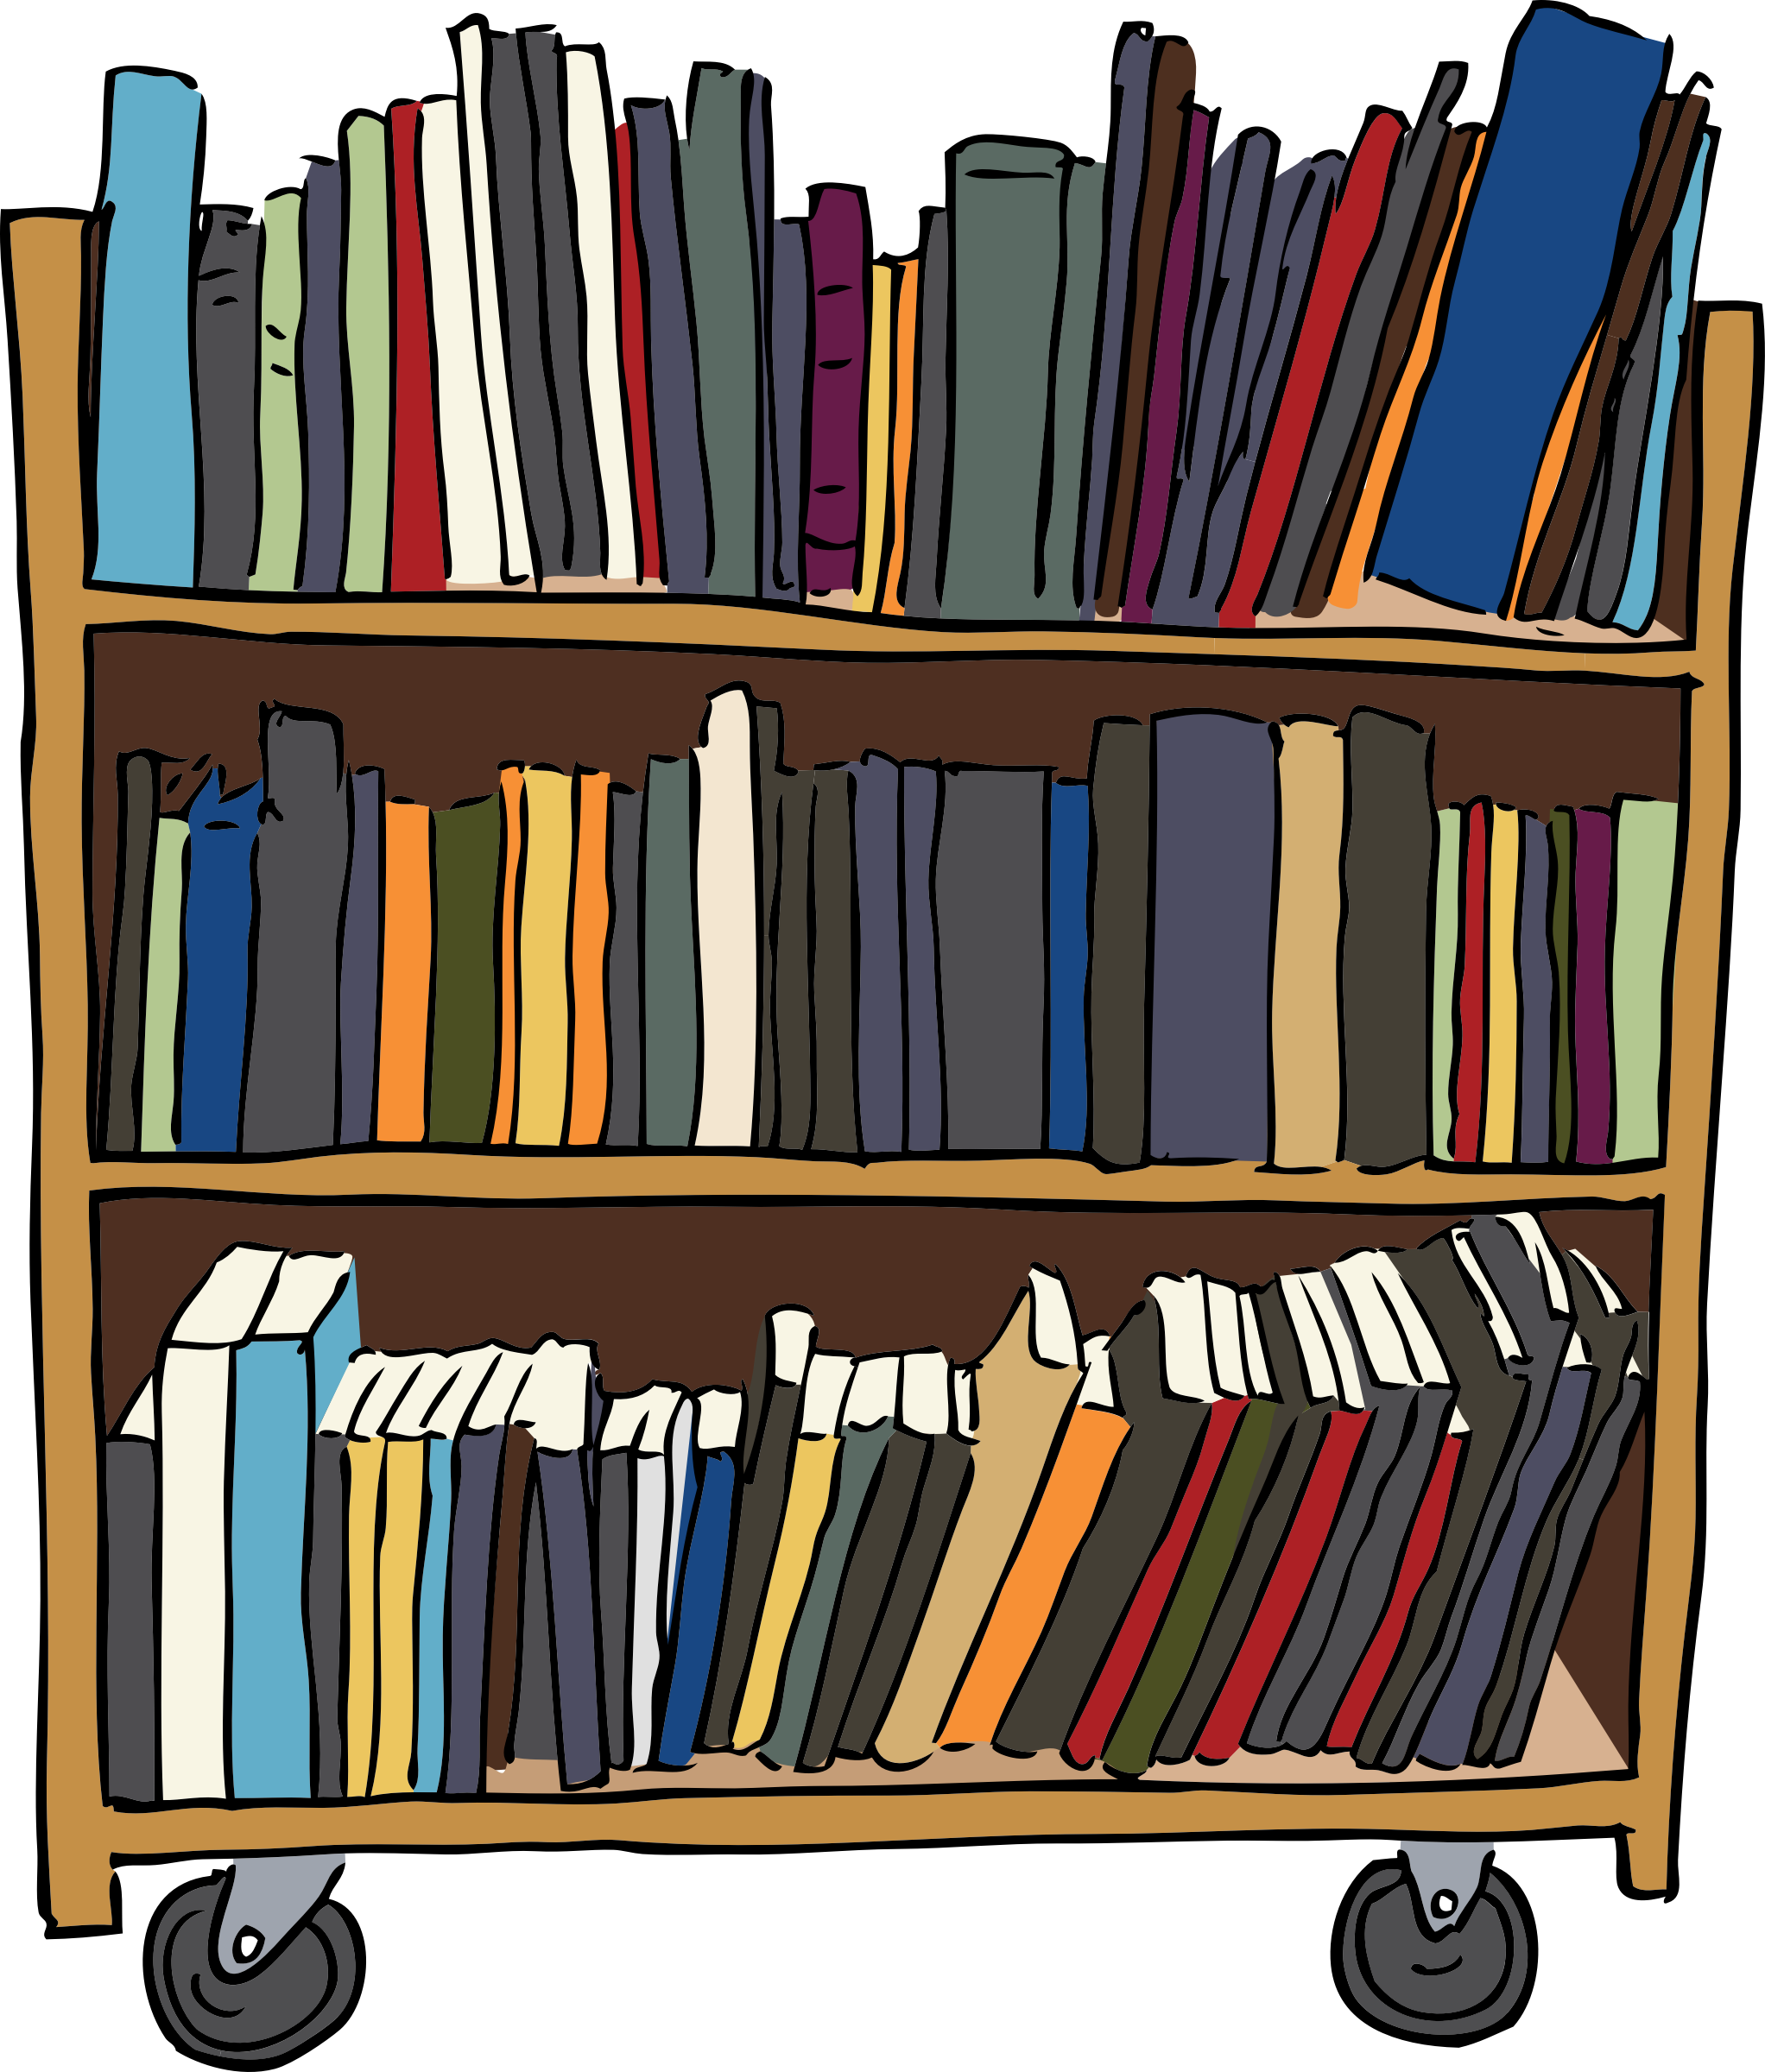 Library Book Cart Vector Graphic image - Free stock photo